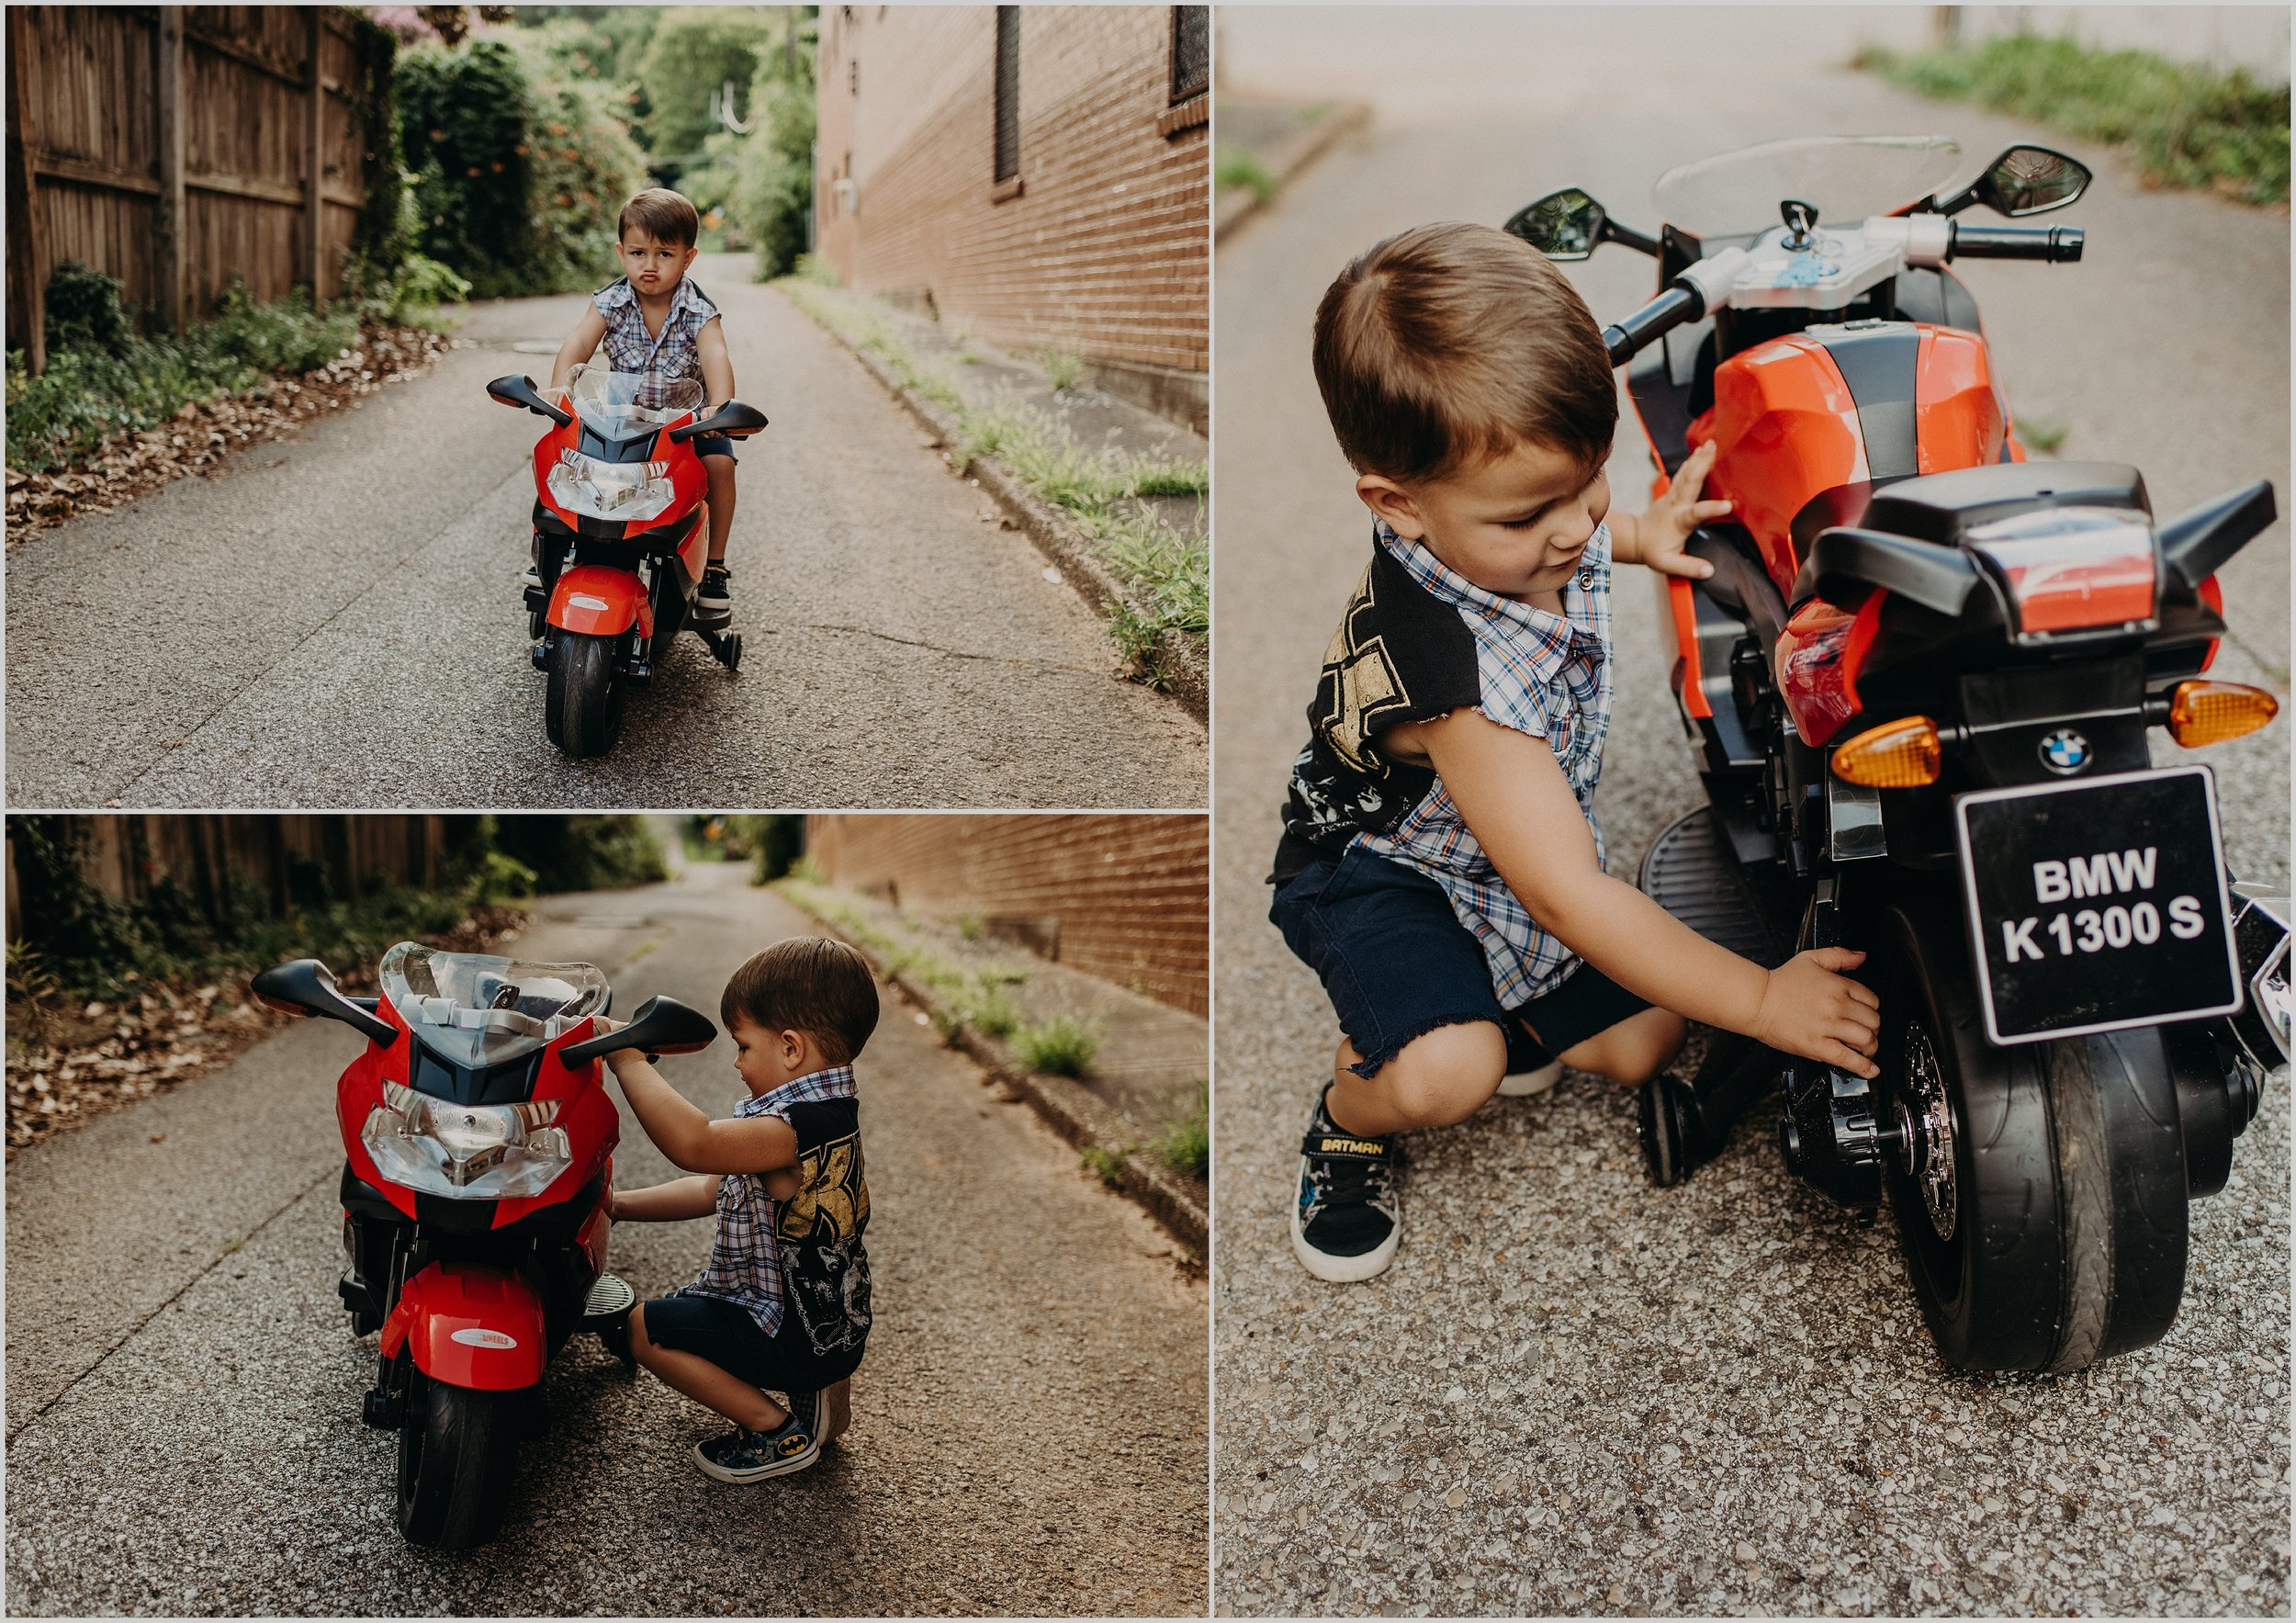 Louie inspects his BMW K 1300 S bike during his family photo session